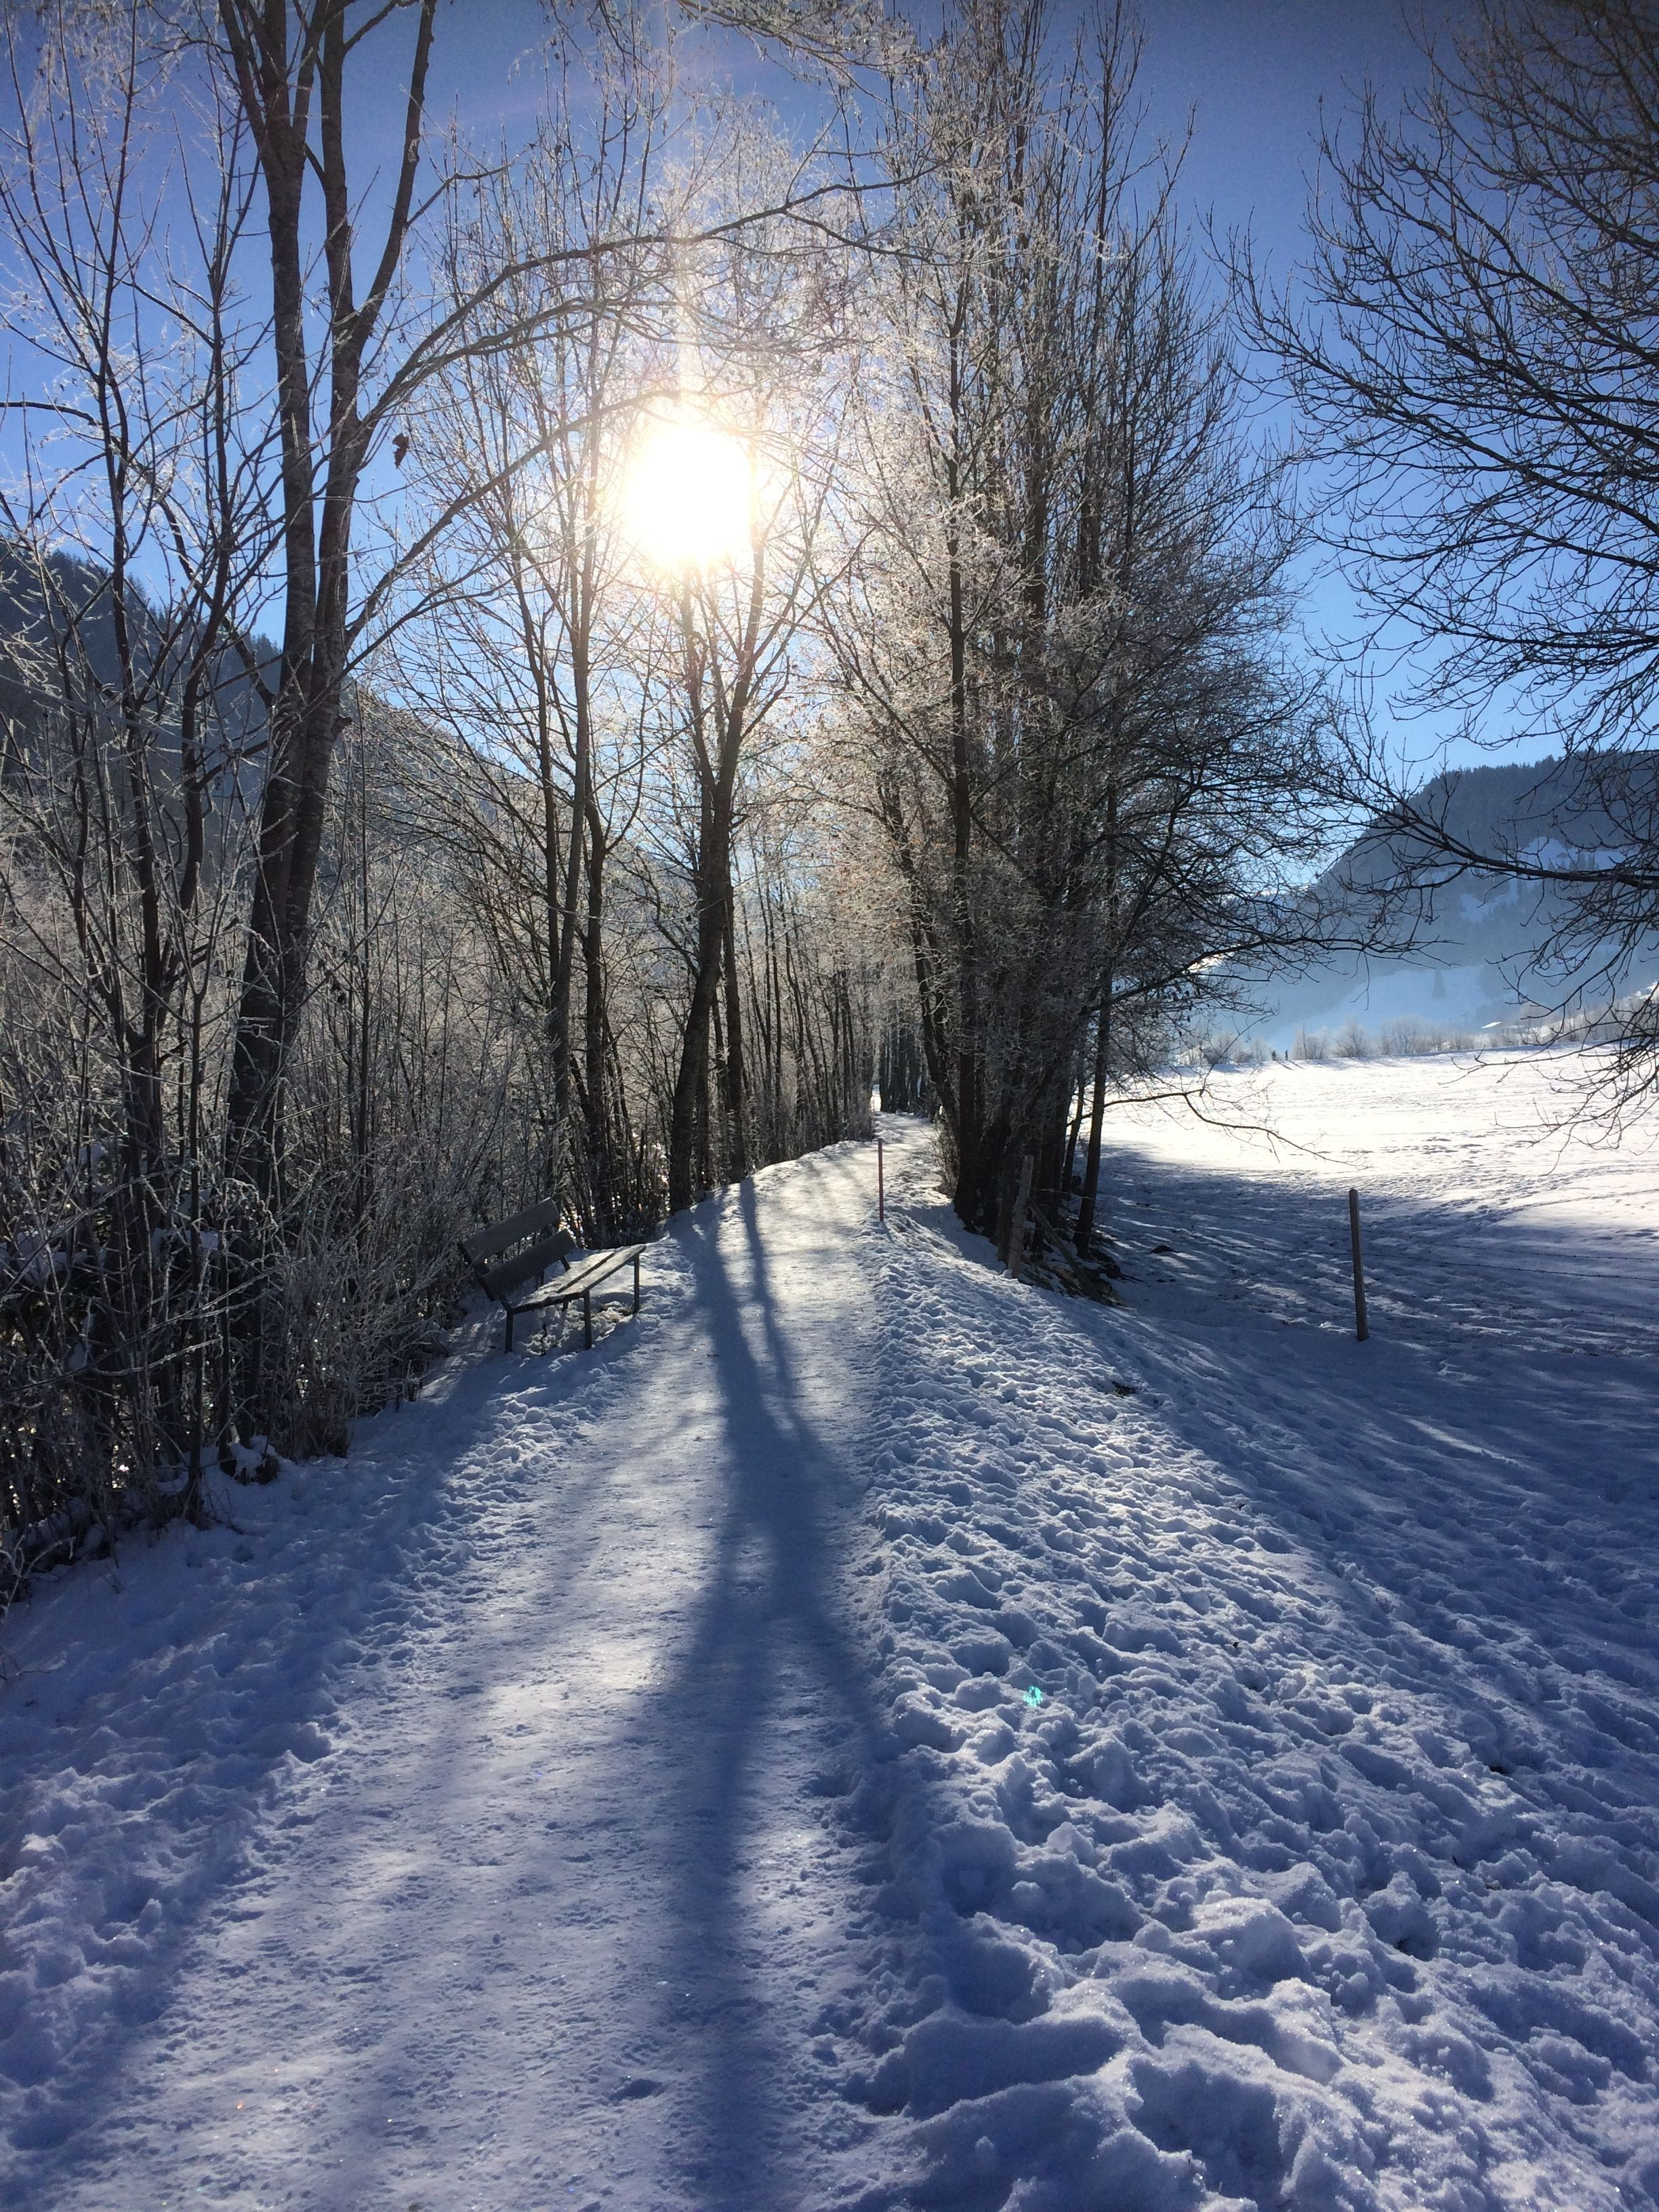 Winderful Winter Day - https://loticaworld.wordpress.com/ Follow us at https://www.facebook.com/loticaworld/ #winter#wintertime#snow#travel#sunlight#sun#blueskies#hiking#travel#switzerland#schweiz#snow#schnee